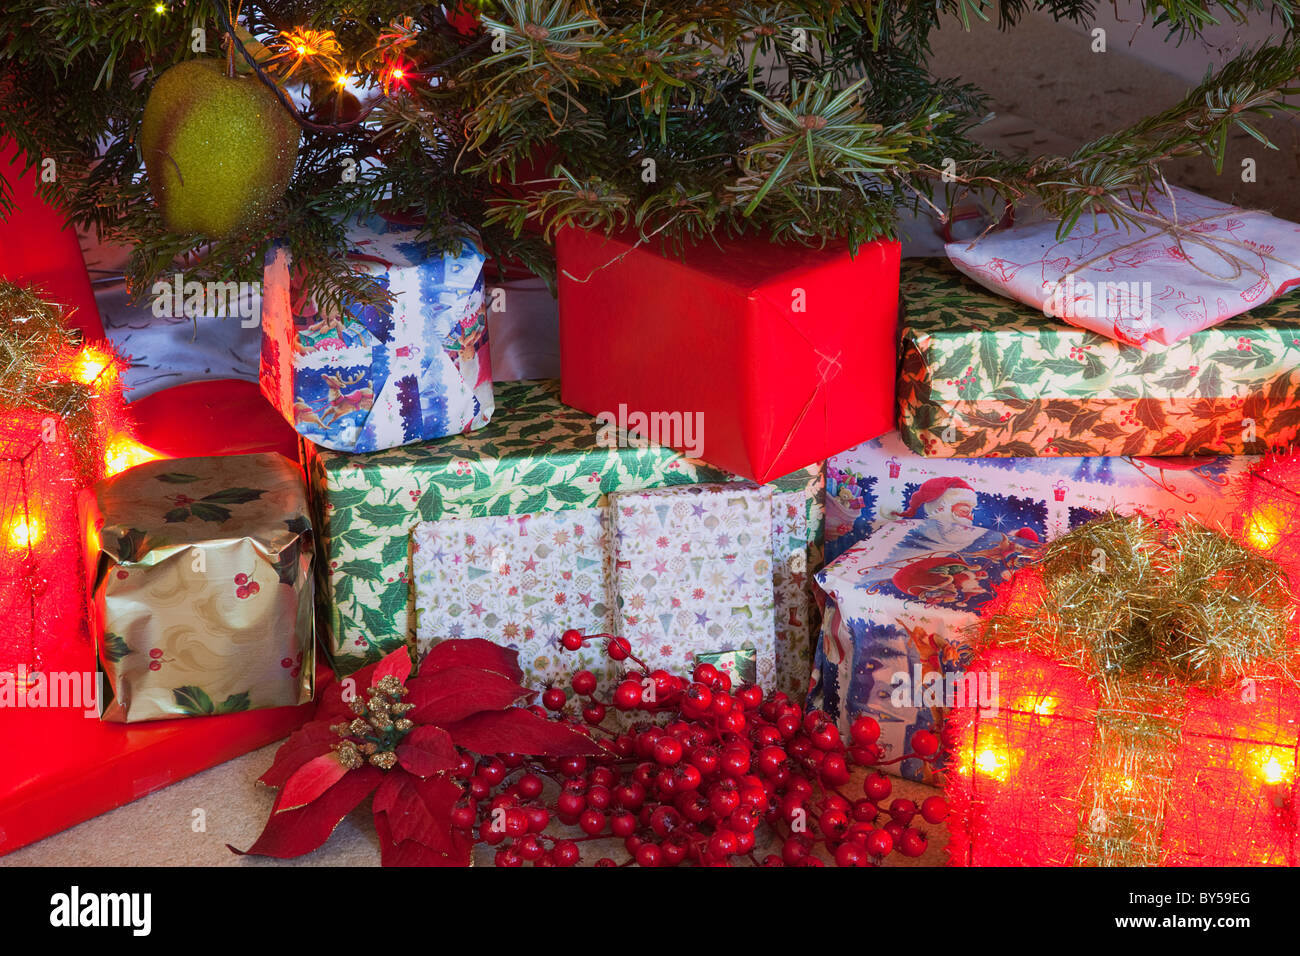 festivals religious christmas presents detail of lights and decorations and xmas gifts under a nordman fir tree